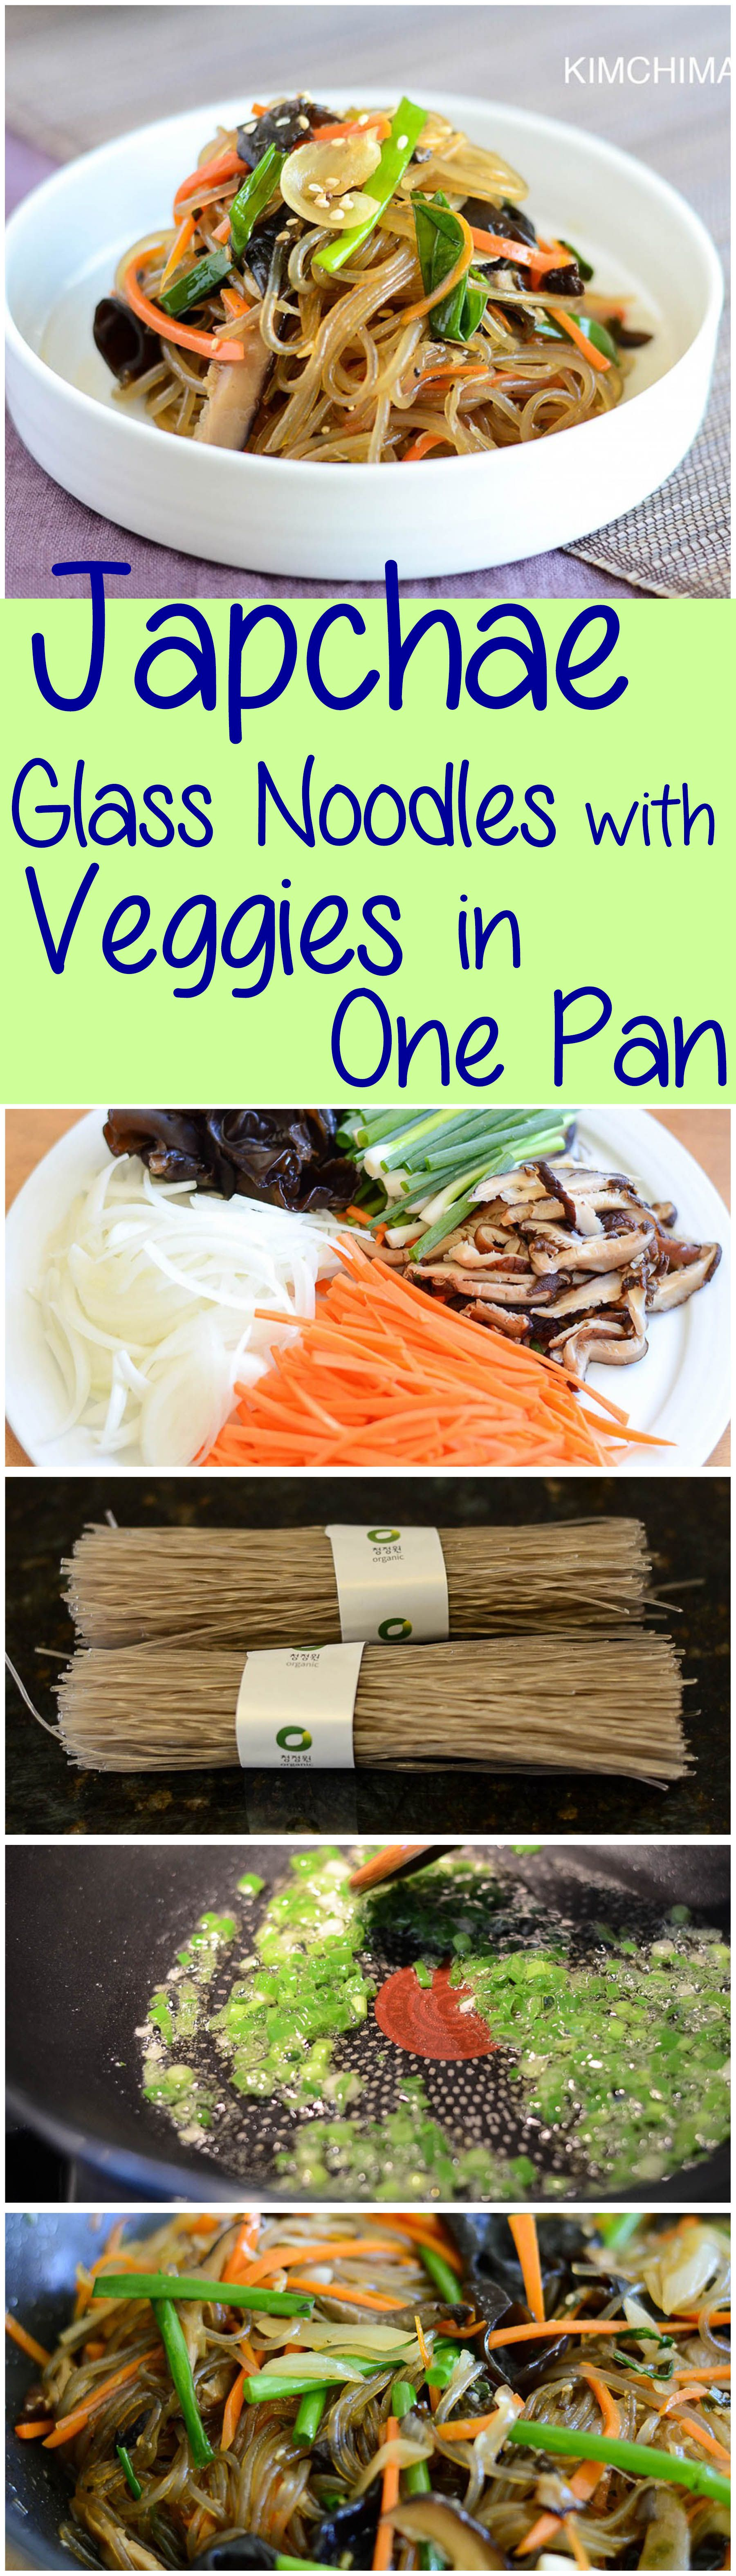 One pan korean japchae simply made with glass noodles mushrooms and one pan korean japchae simply made with glass noodles mushrooms and veggies delicious and healthy it is a meal on its own kimchimari forumfinder Image collections